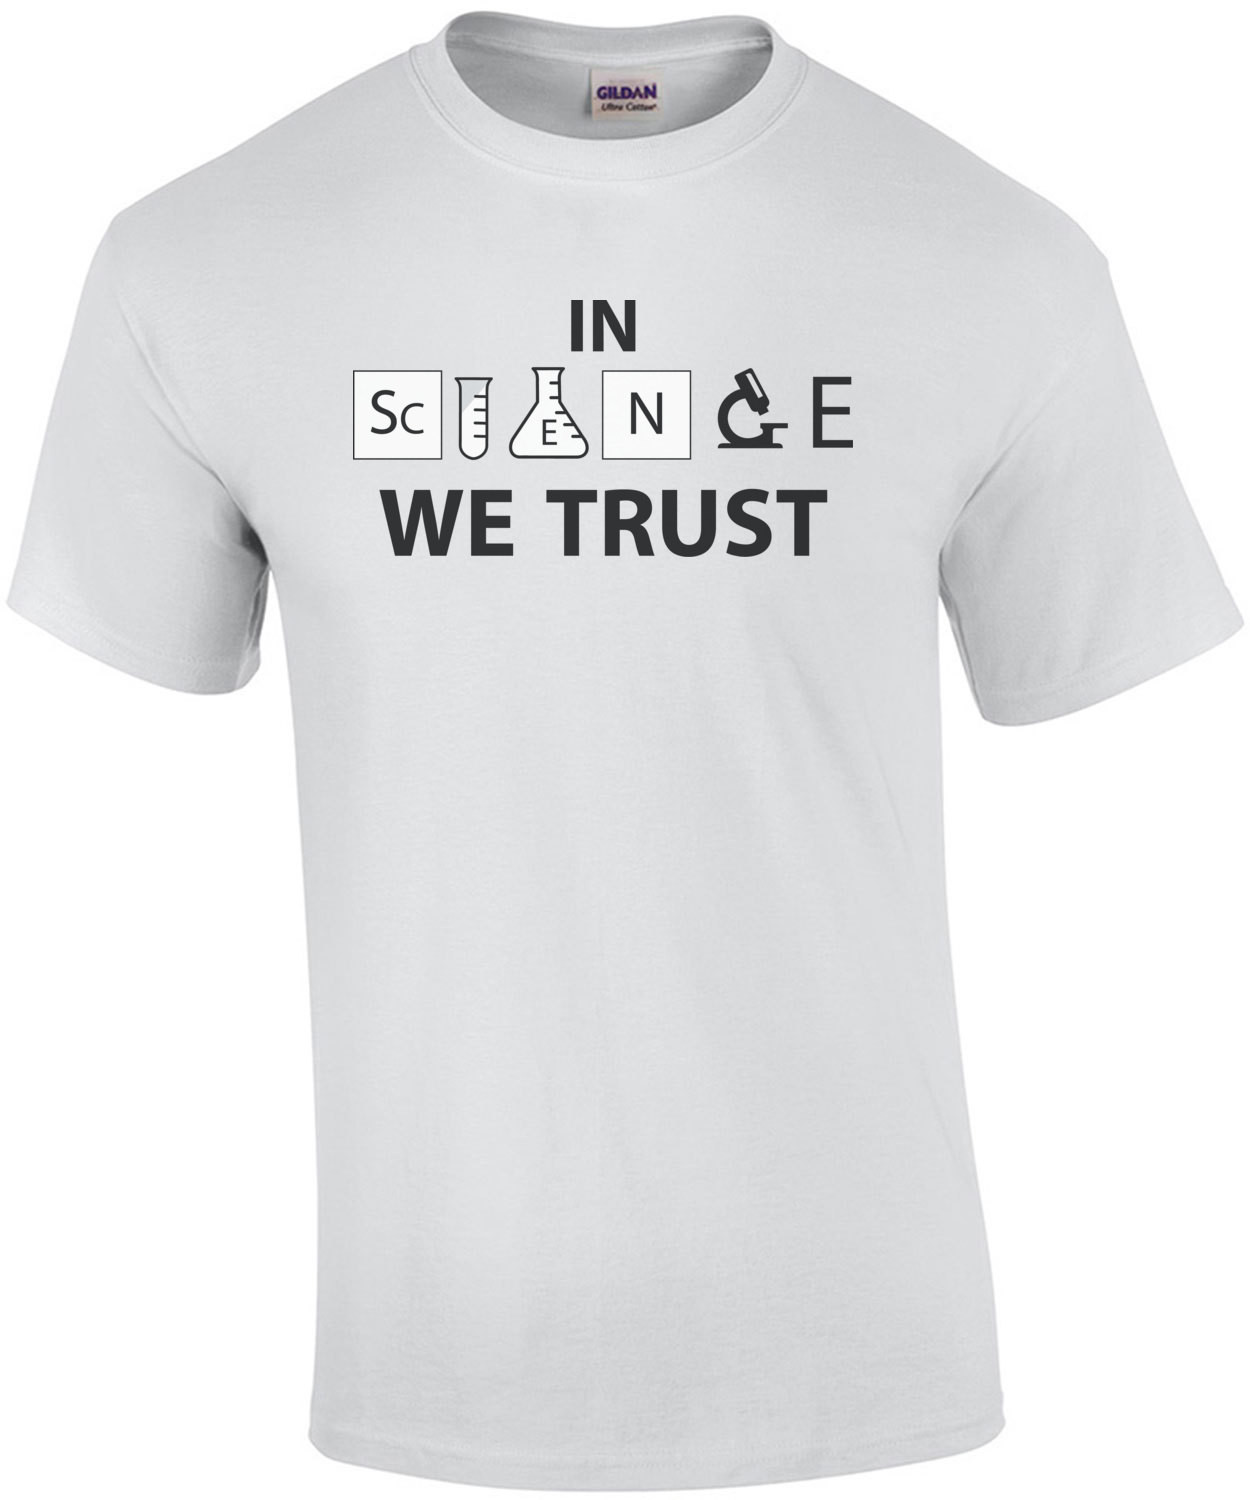 In Science We Trust - Science T-Shirt